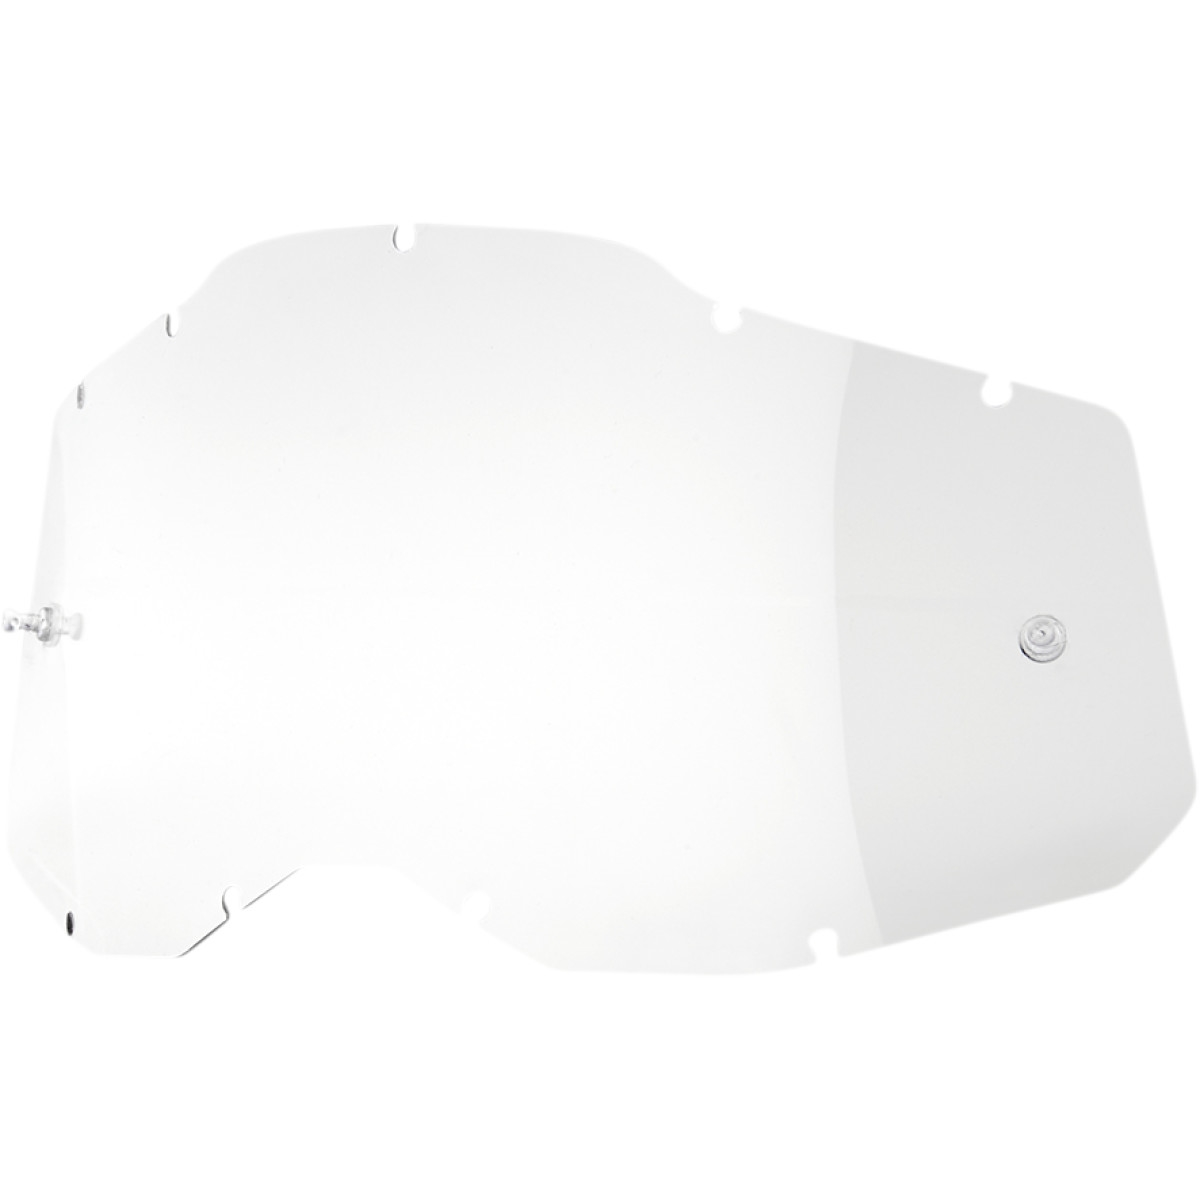 Replacement Lens for Racecraft 2, Accuri 2 and Strata 2 Masks - Transparent clear